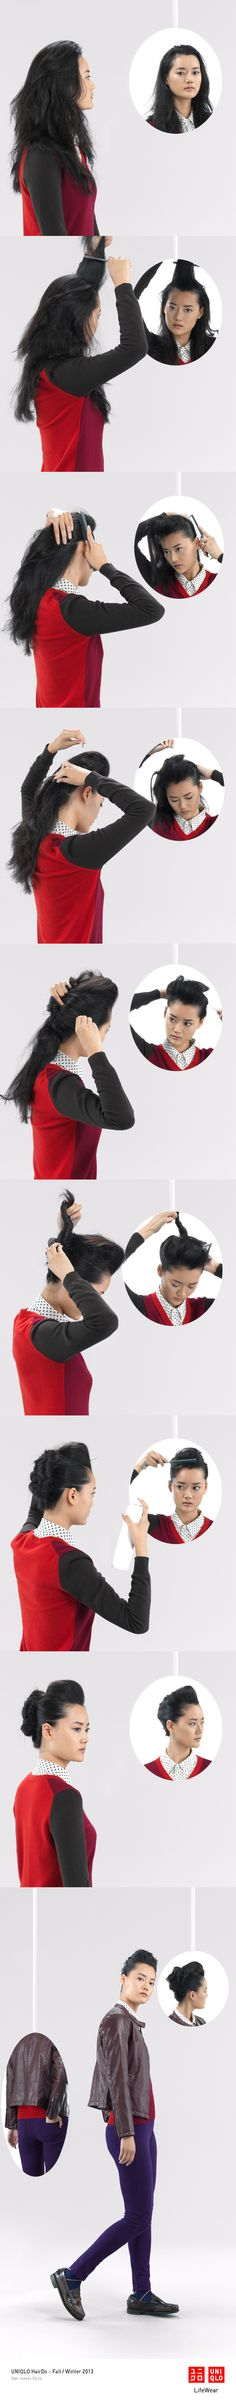 """THE LILY QUIF"" : A leather jacket and ultra stretch jeans are pefrect with this cool hair style.   Click the image for DIY instructions! #UpDo #DIY #Hair #Hairstyle #Uniqlo #FW2013 #UltraStretch #USJ #HairDo"